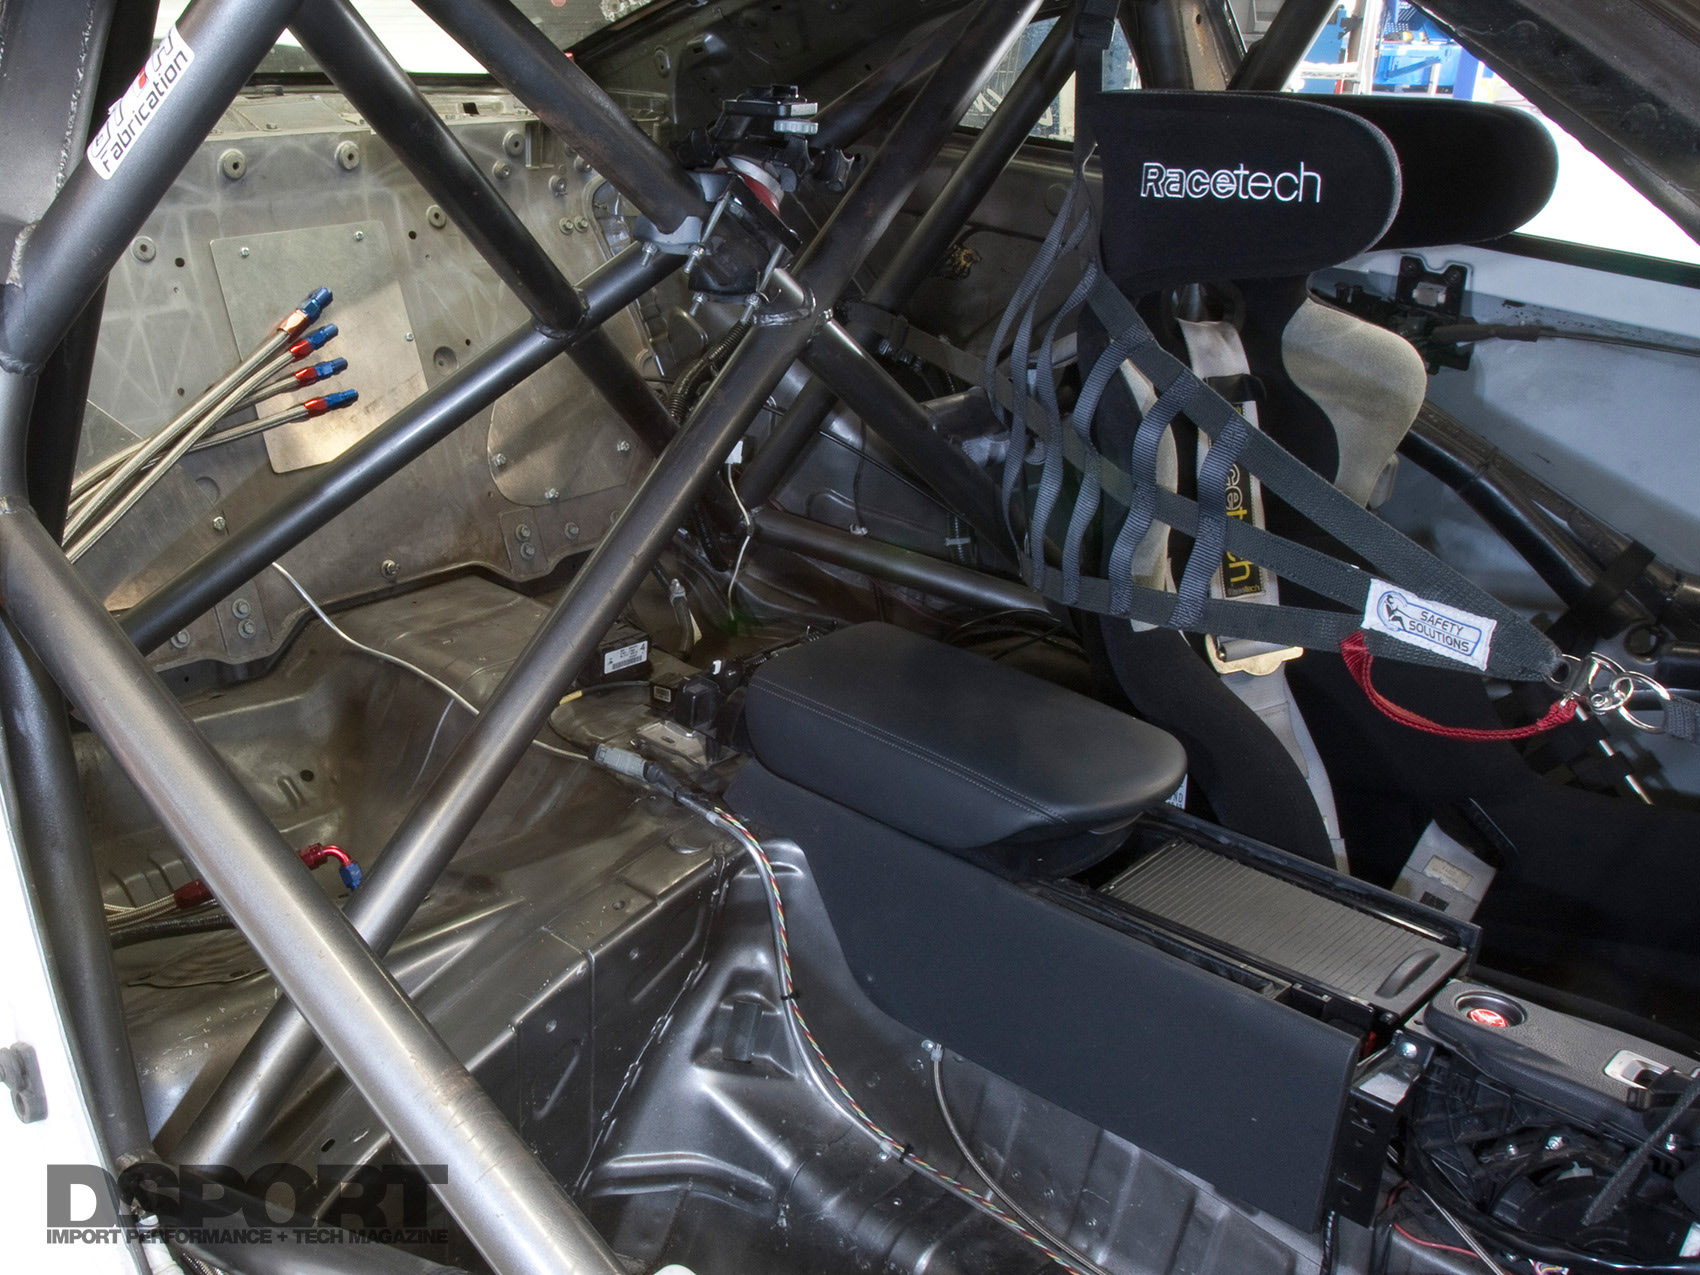 Chassis Tuning 101 Minimizing Flex Improves Performance And Handling